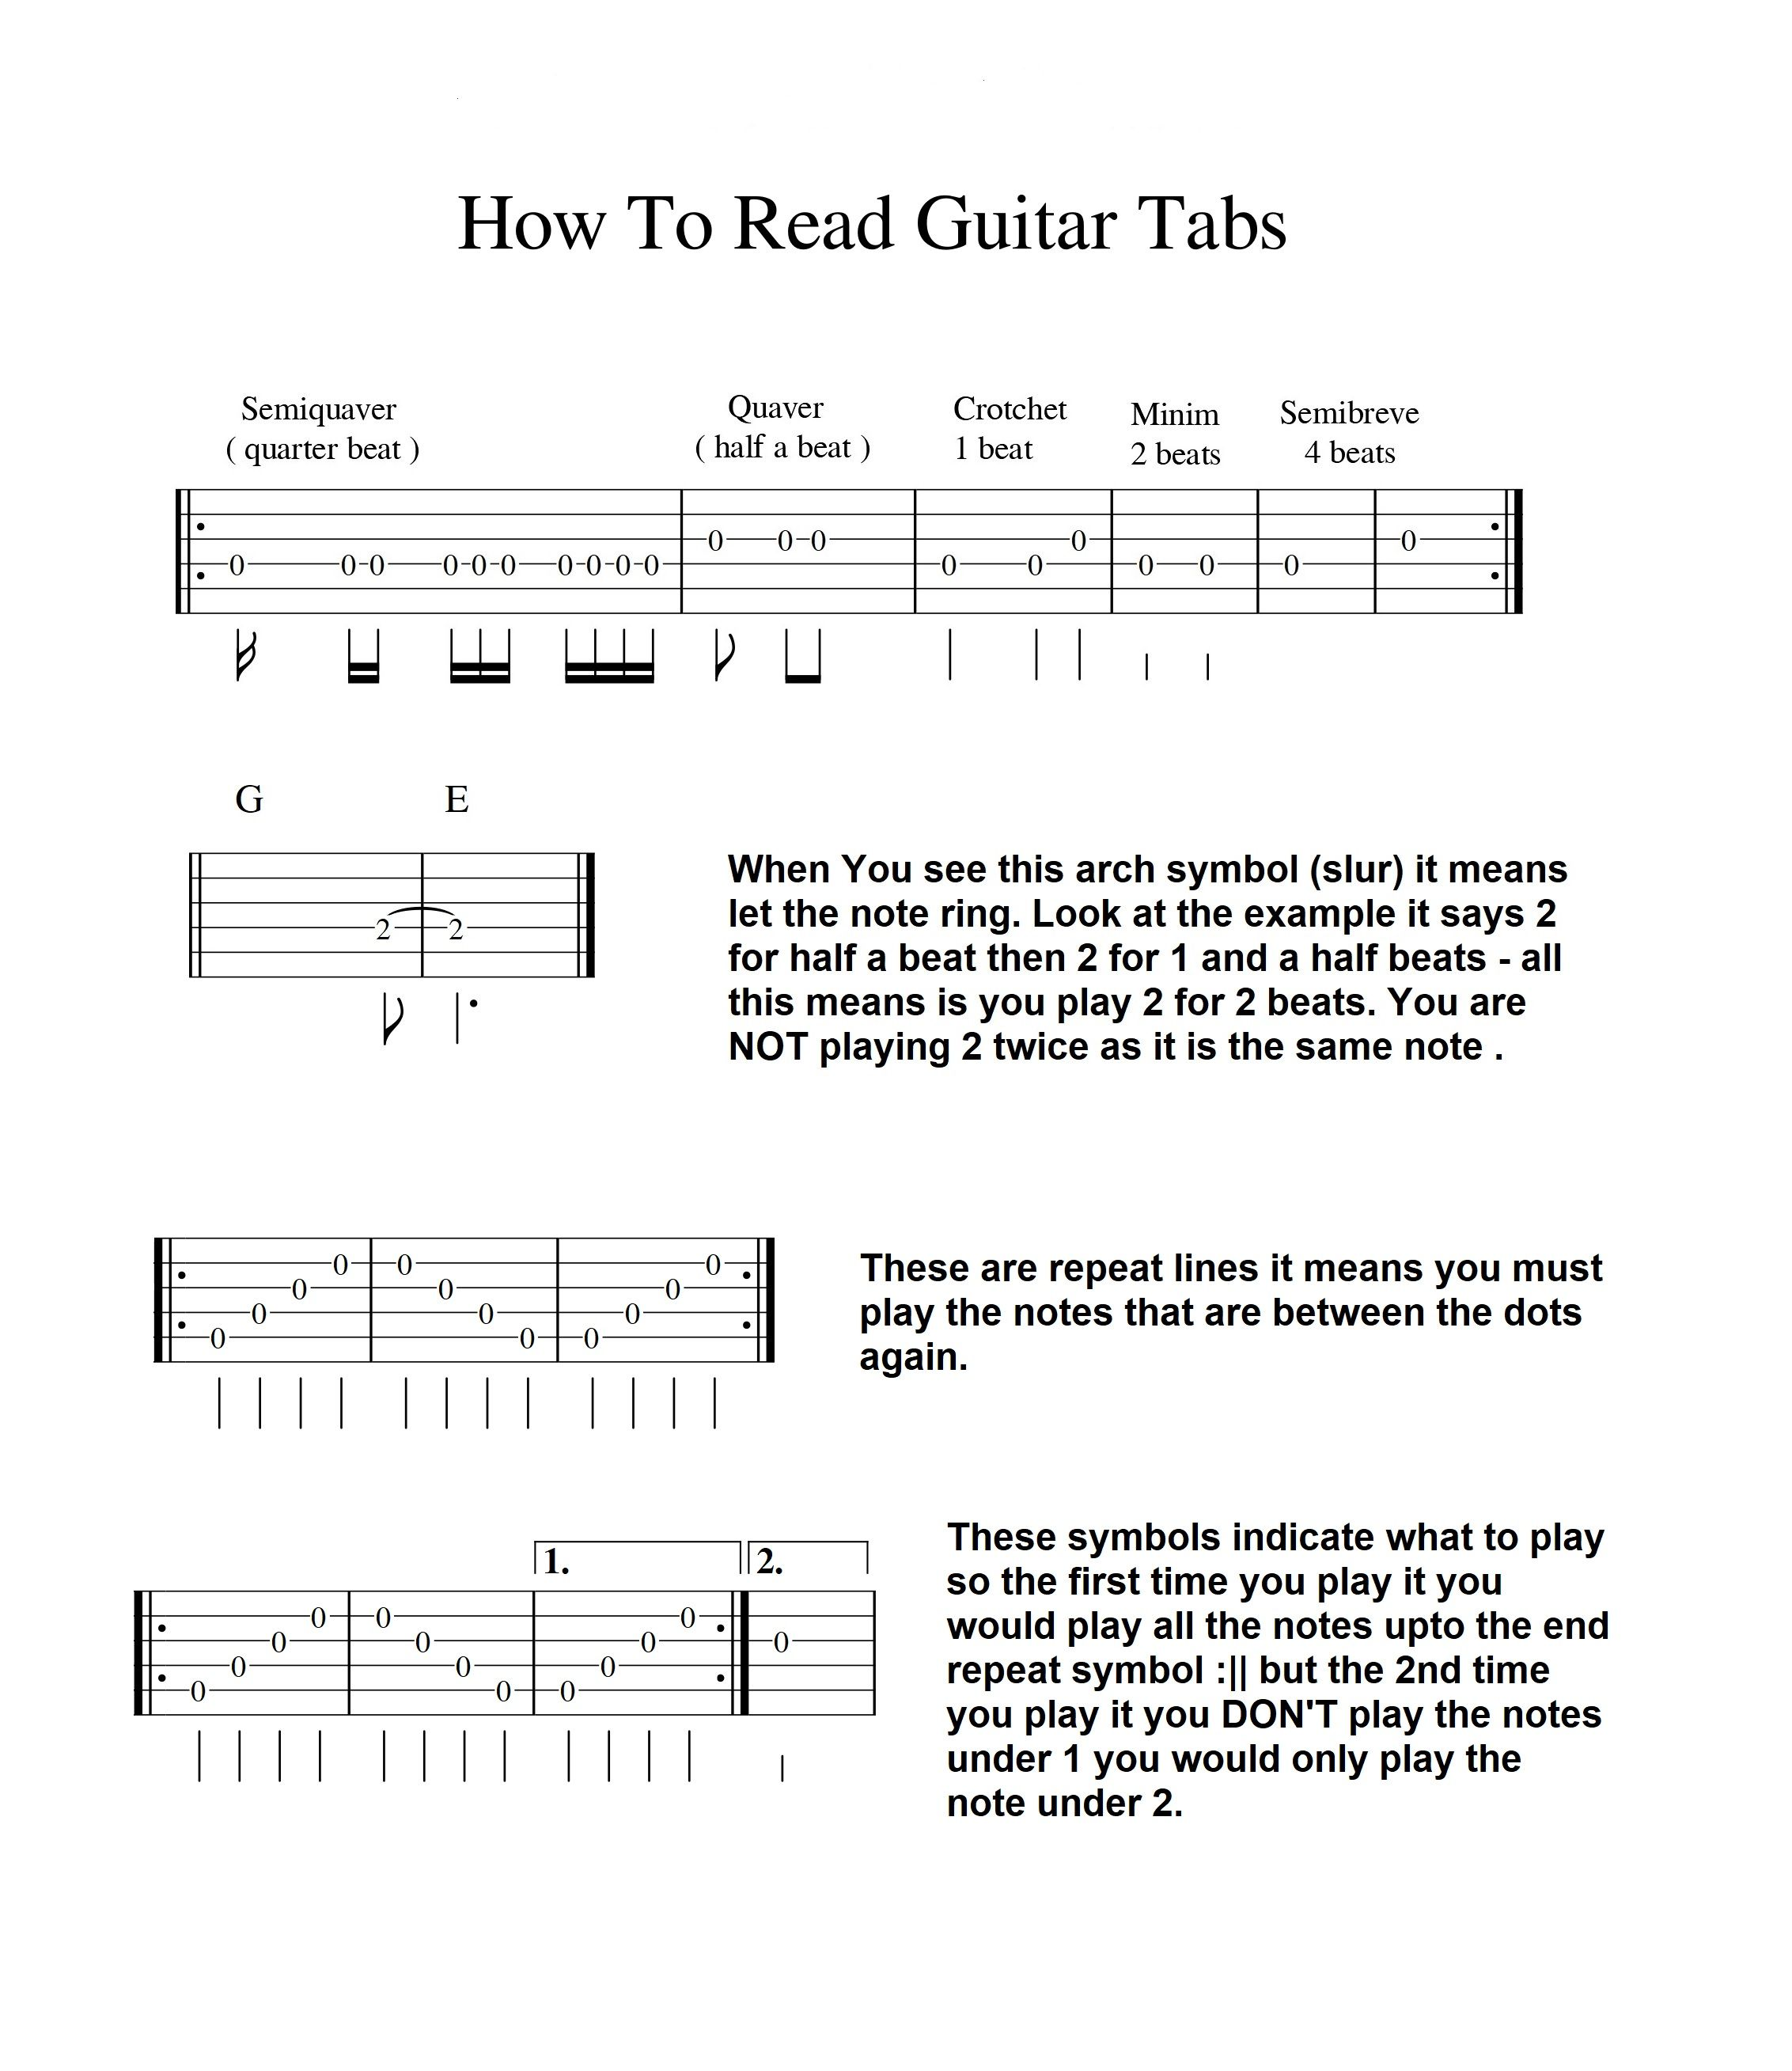 How To Read Guitar Tabs Pdf - arxiusarquitectura